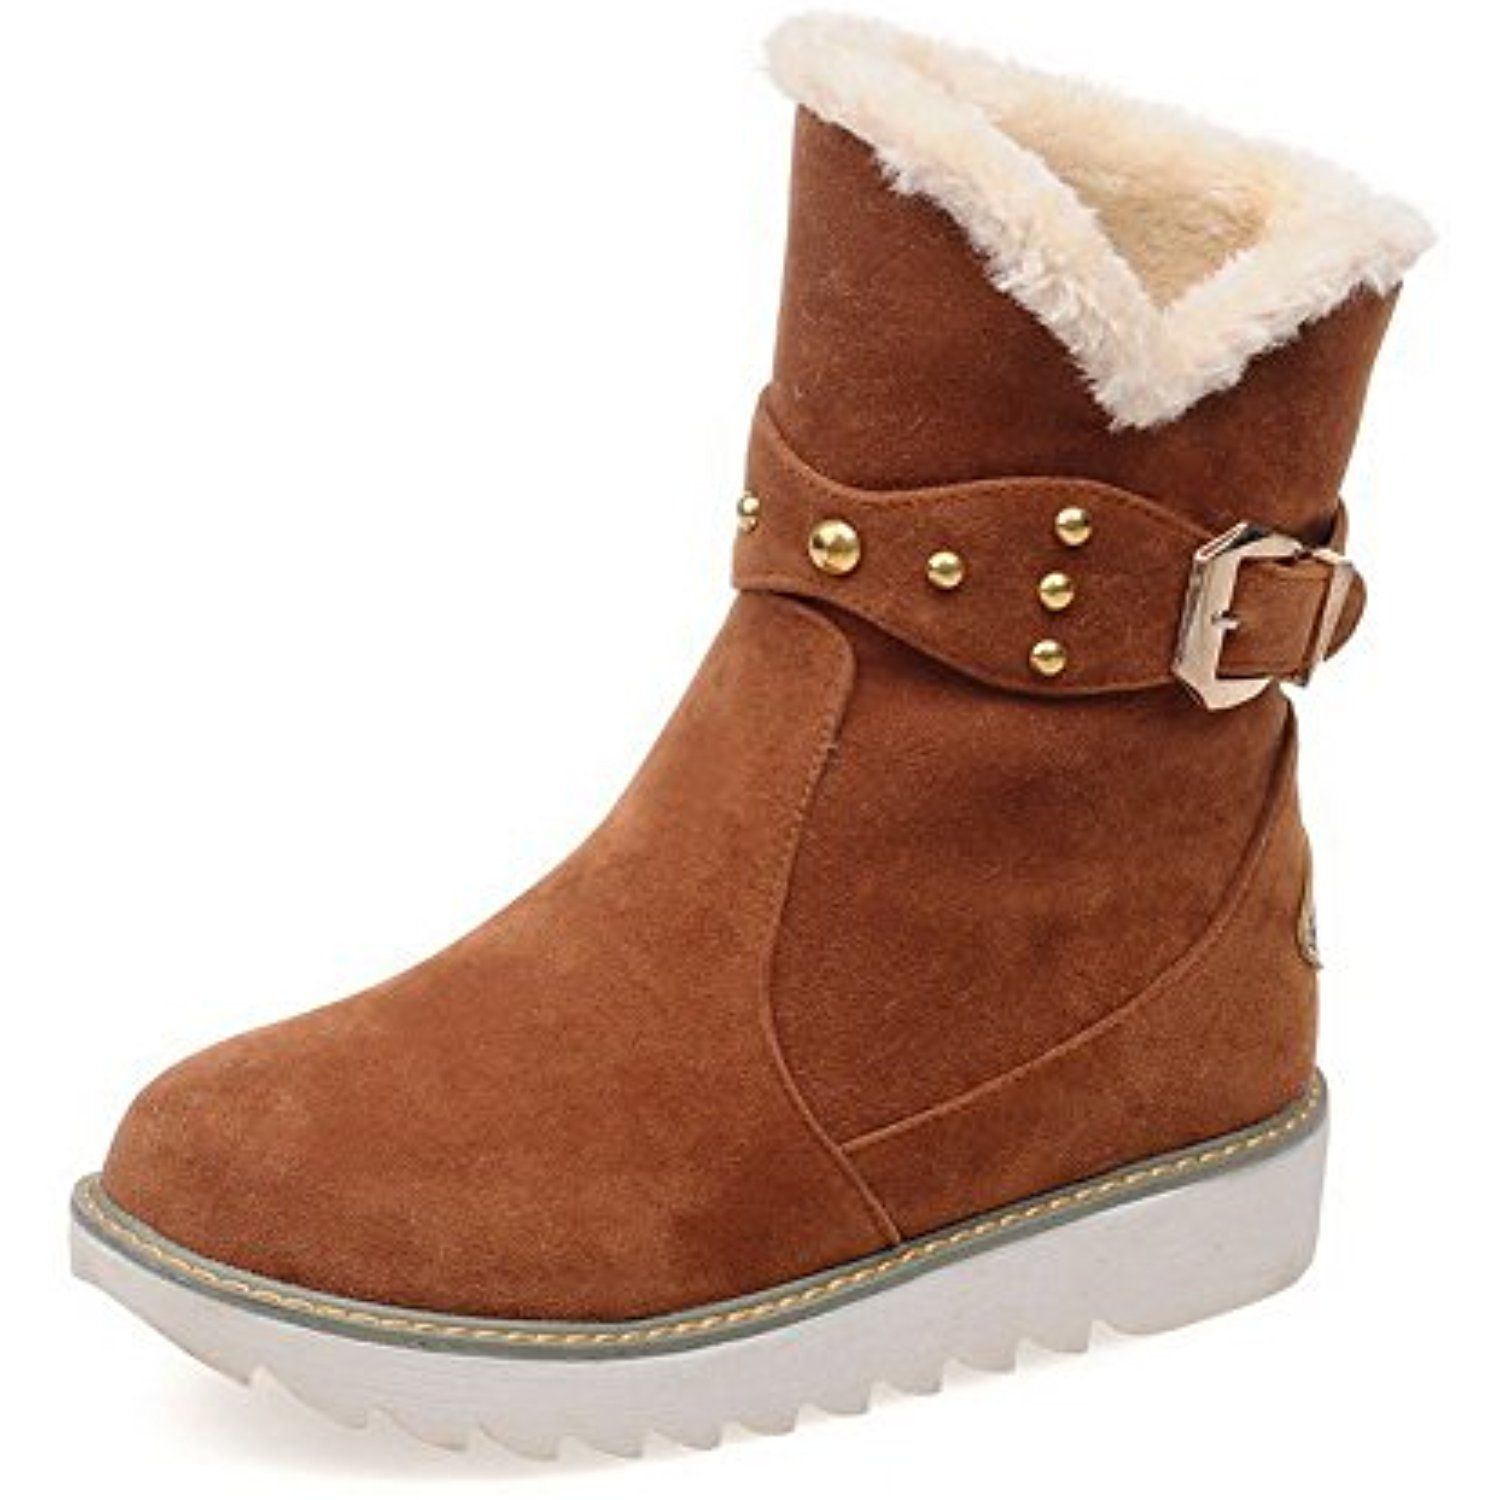 Shoes For Women Low Heel Round Toe Closed Toe Boots Outdoor